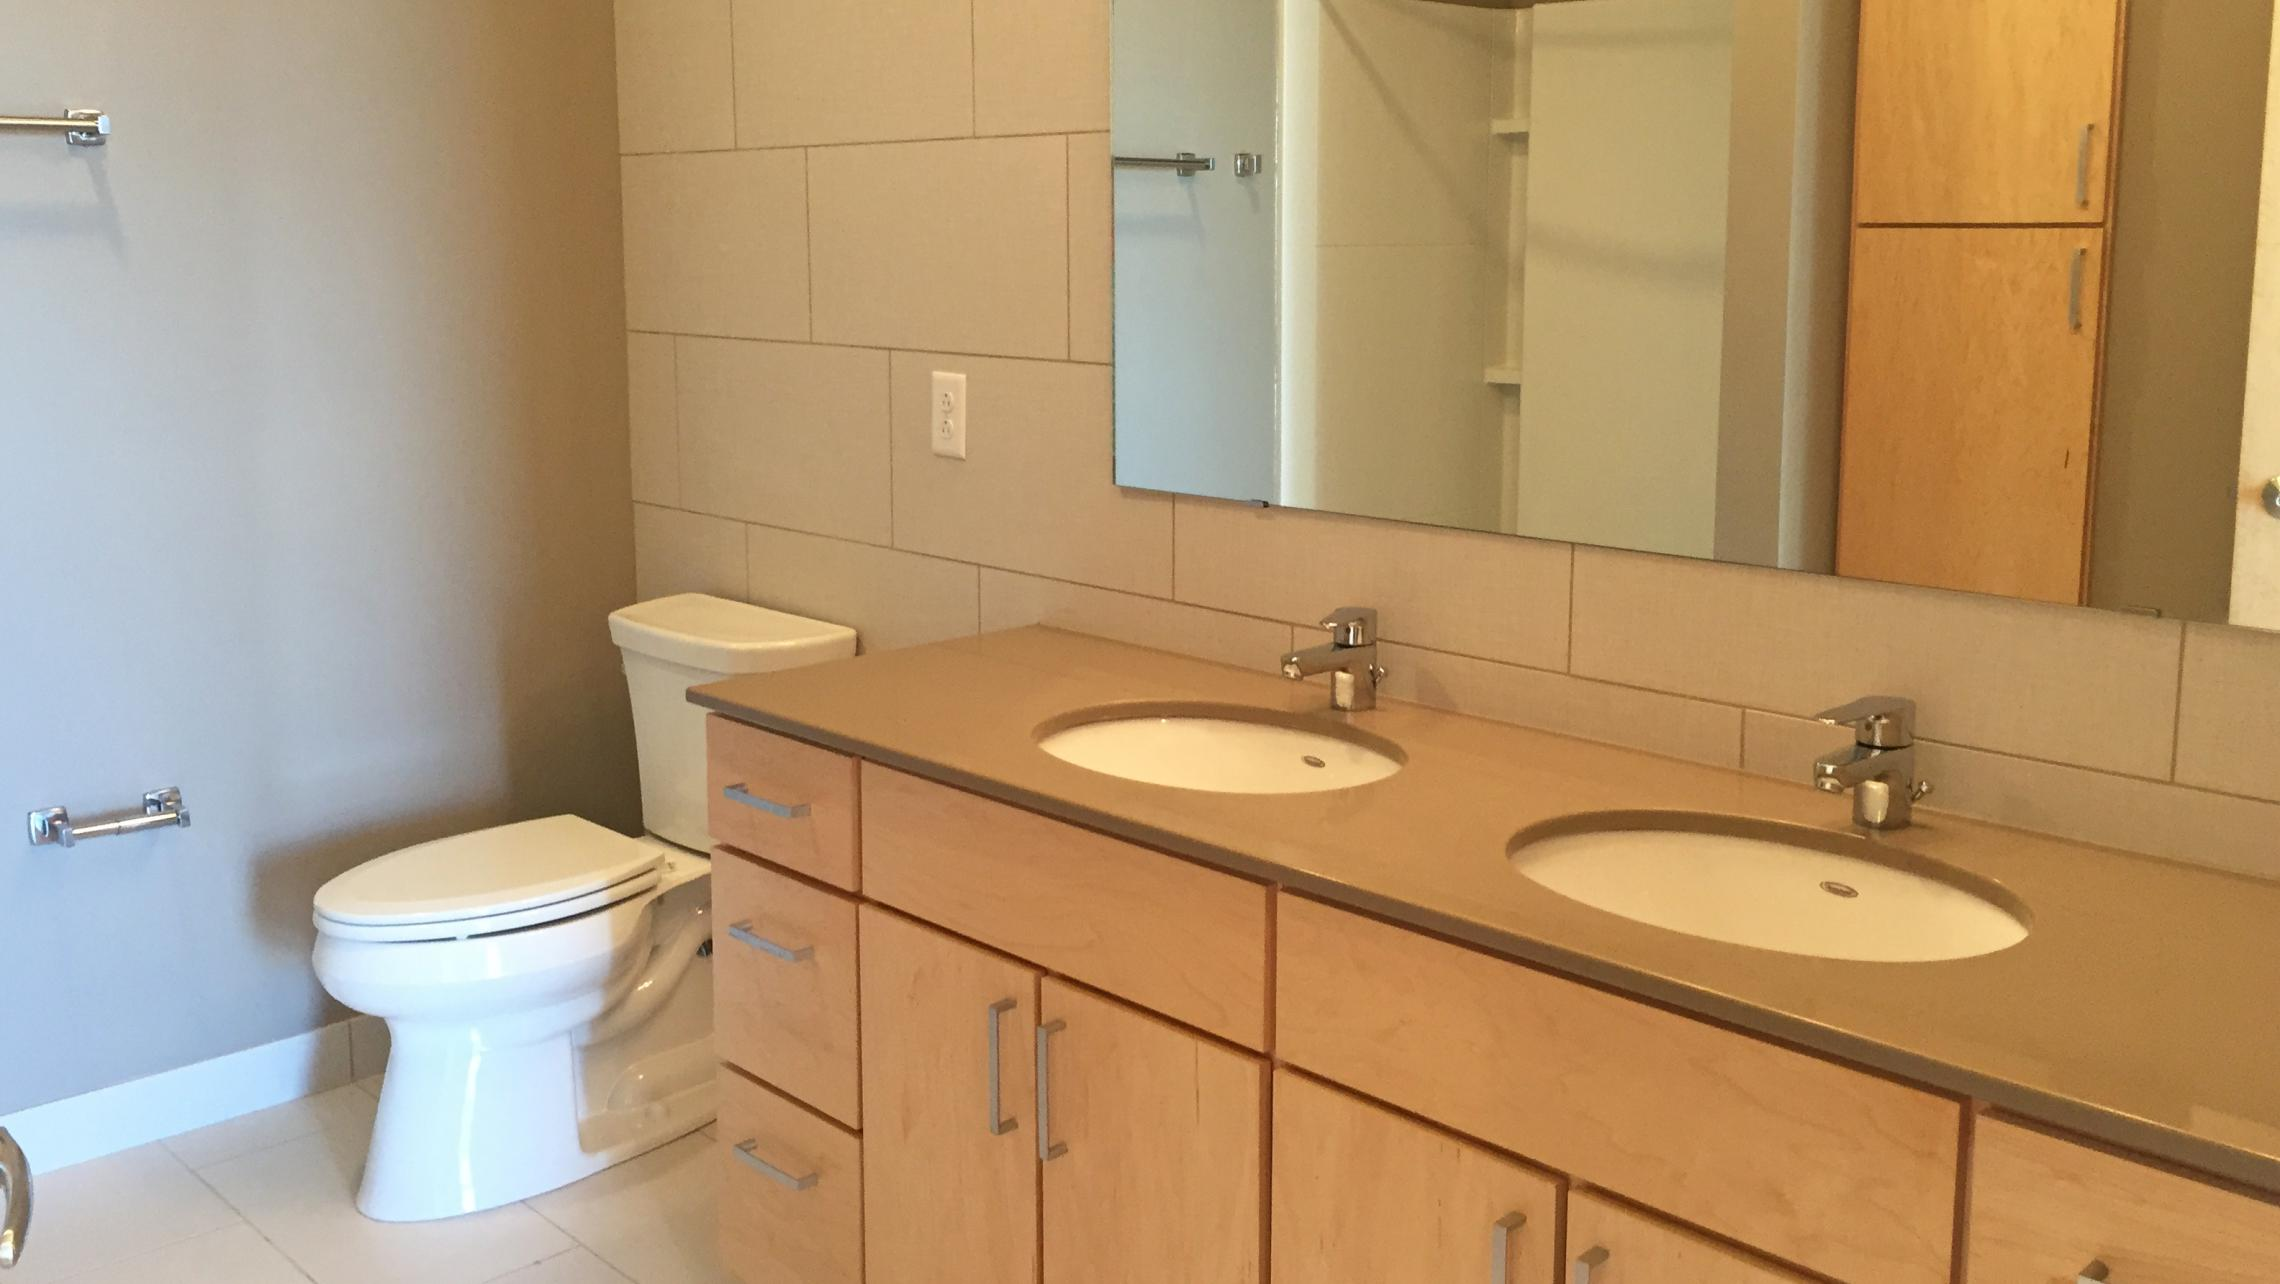 ULI Nine Line 523 - Bathroom